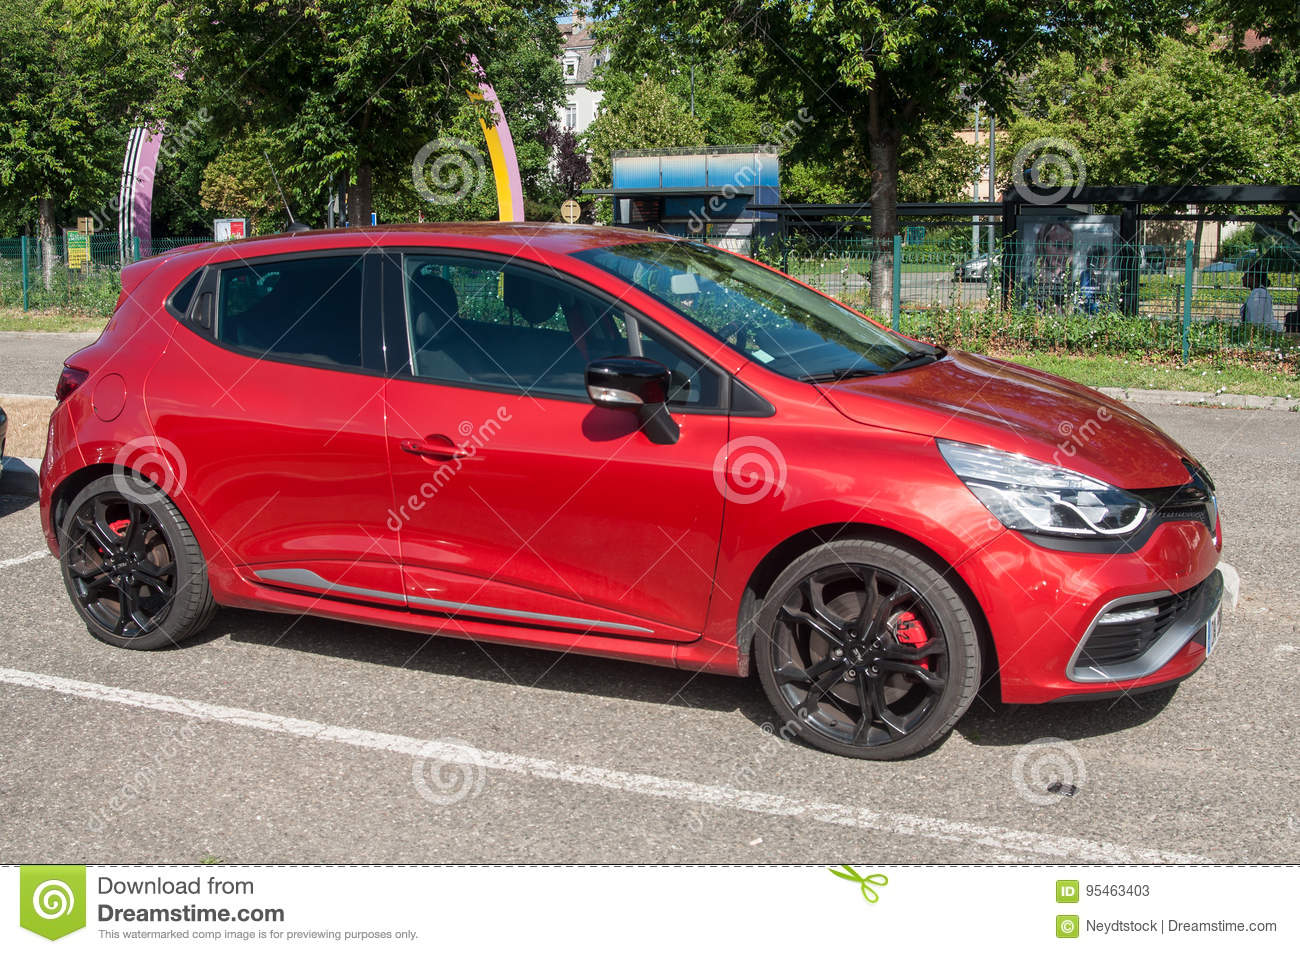 477 Renault Clio Sport Photos Free Royalty Free Stock Photos From Dreamstime